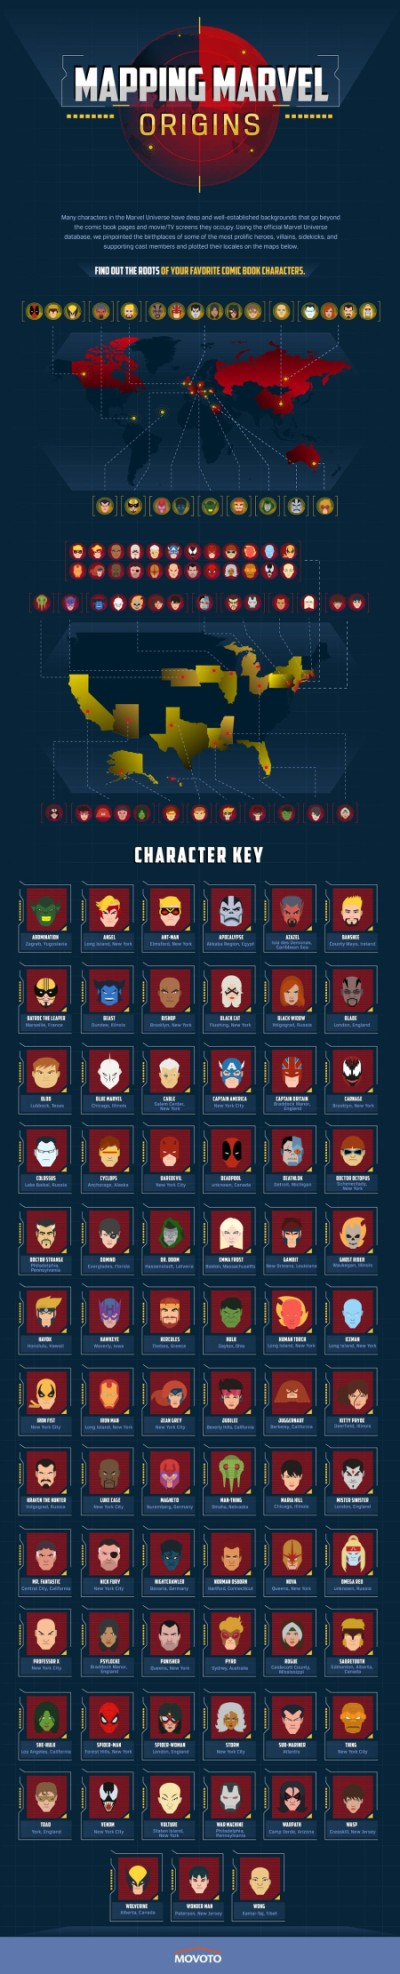 Marvel Origins infographic